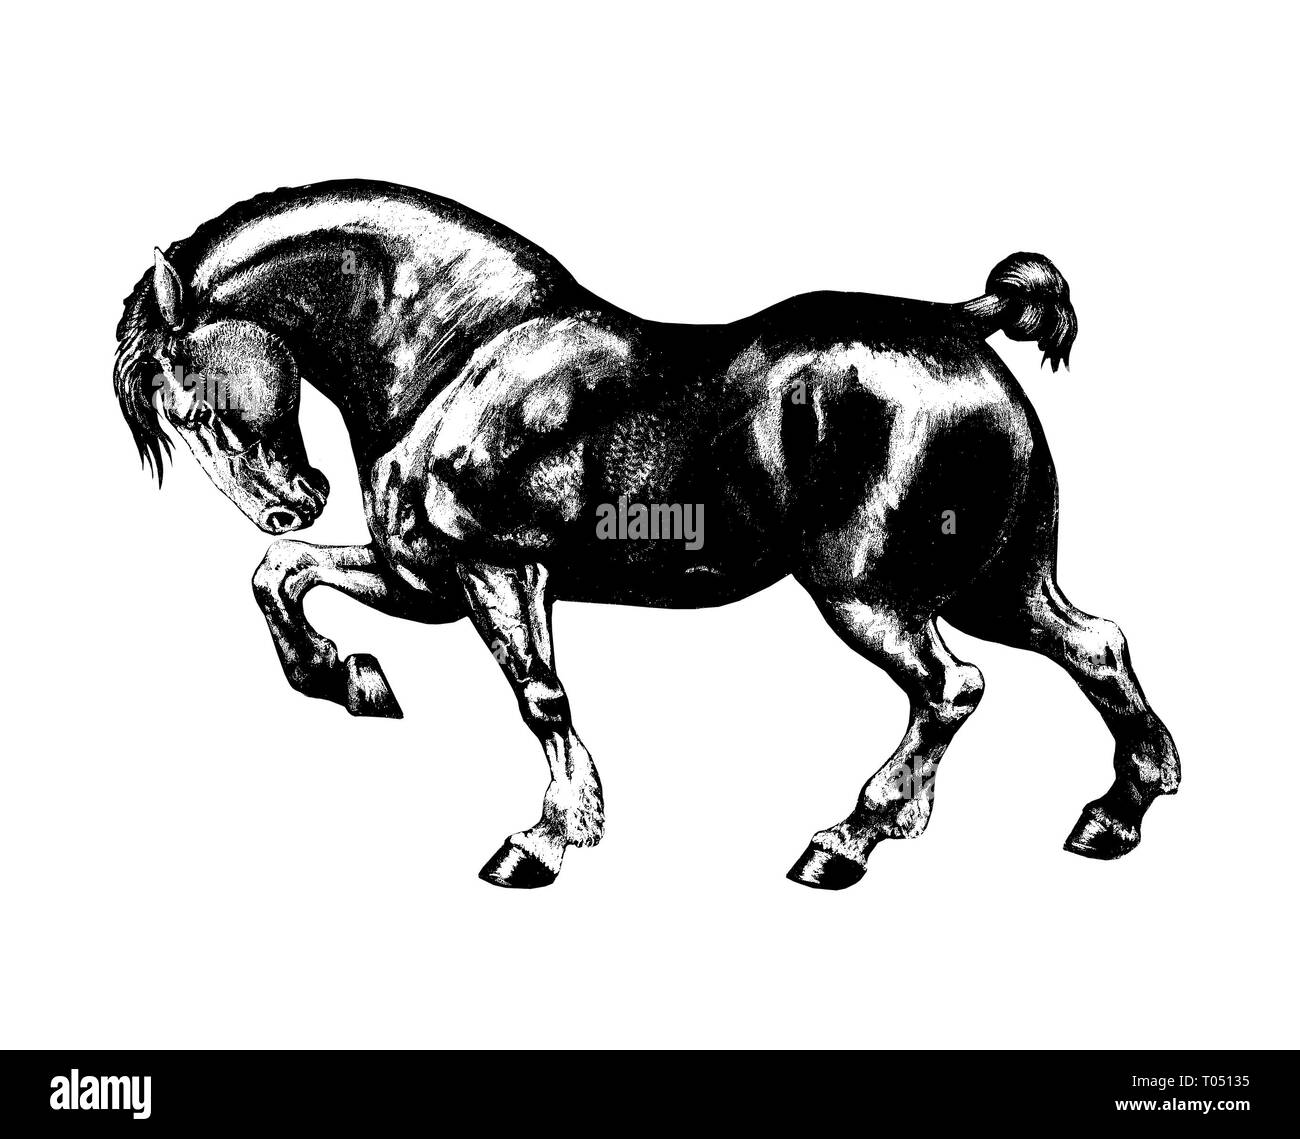 Draft Horse Illustration Strong Horse Drawing Portrait Stock Photo Alamy